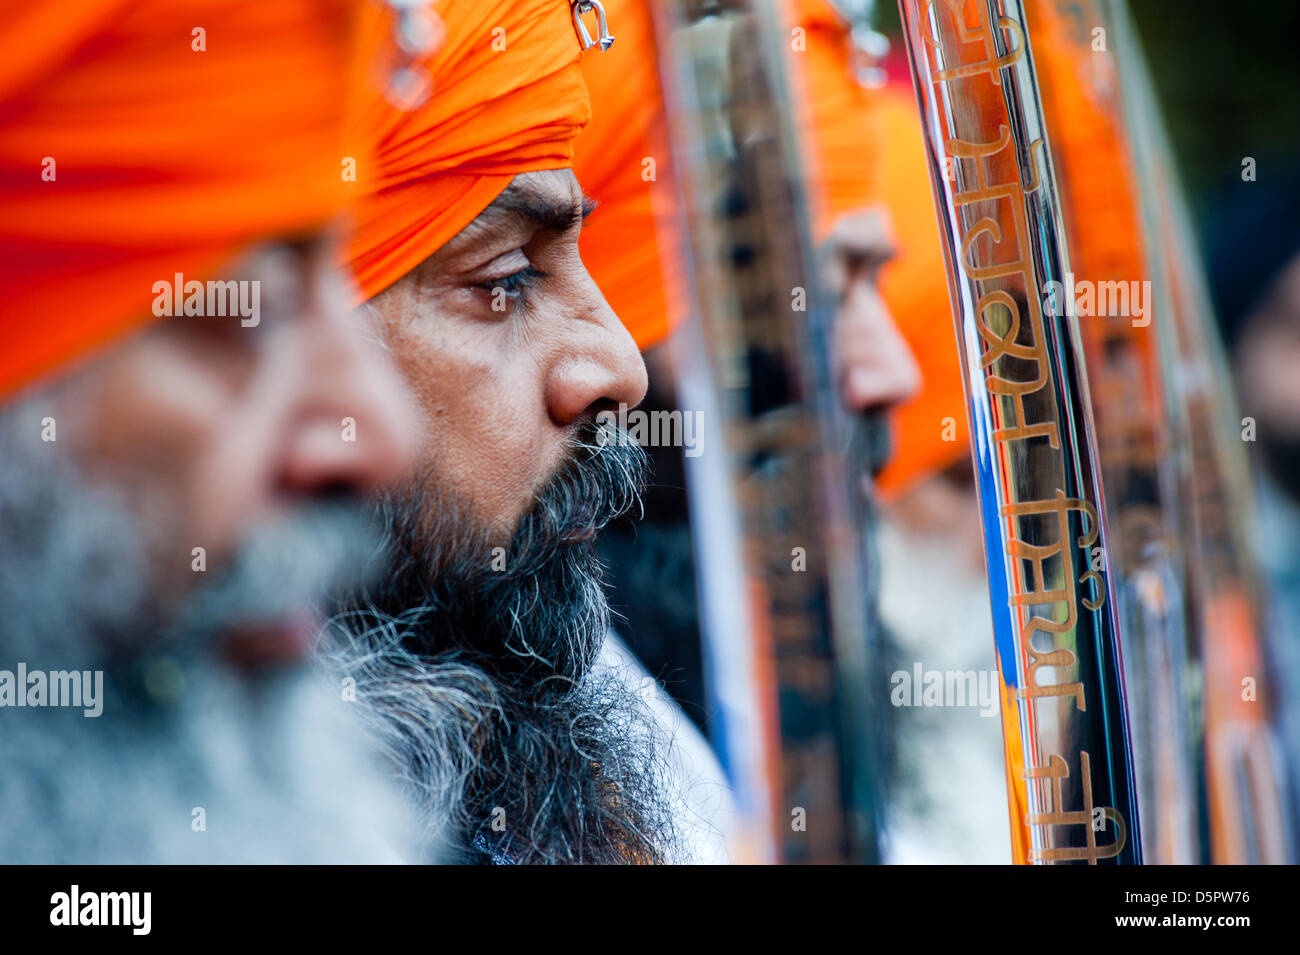 London, UK. 7th April 2013. One of the Panj Piare during the celebrations of Nagar Kirtan in Southall. Credit: Piero - Stock Image